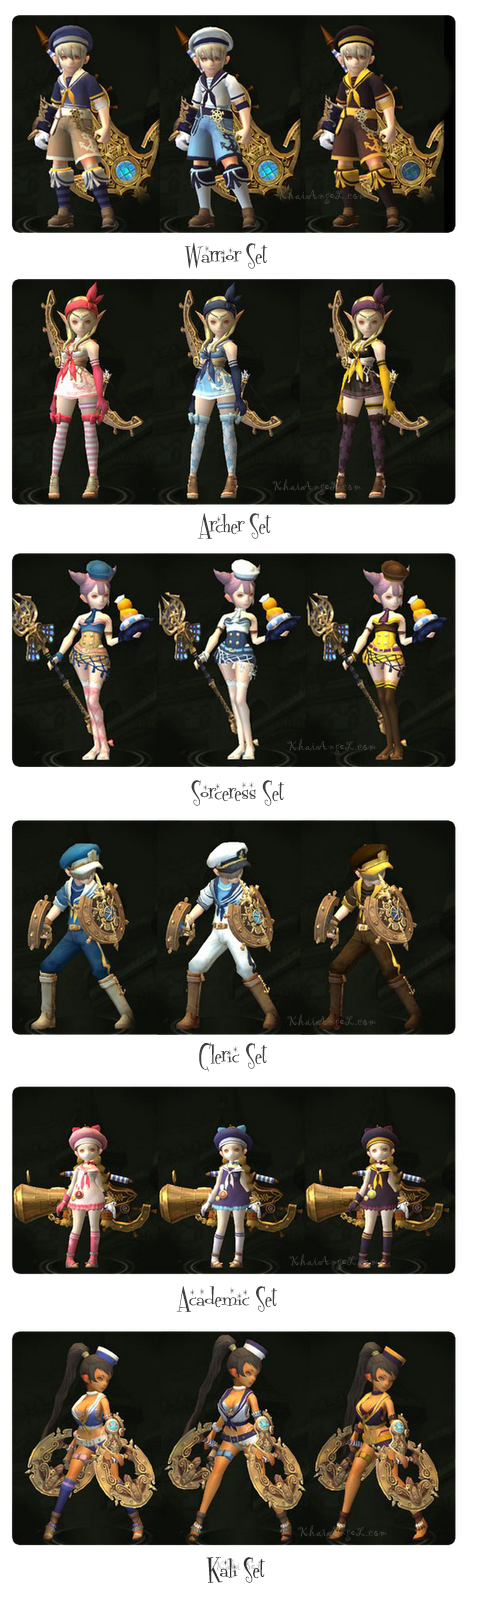 Dragon Nest SEA Marine Costume and Weapons Preview